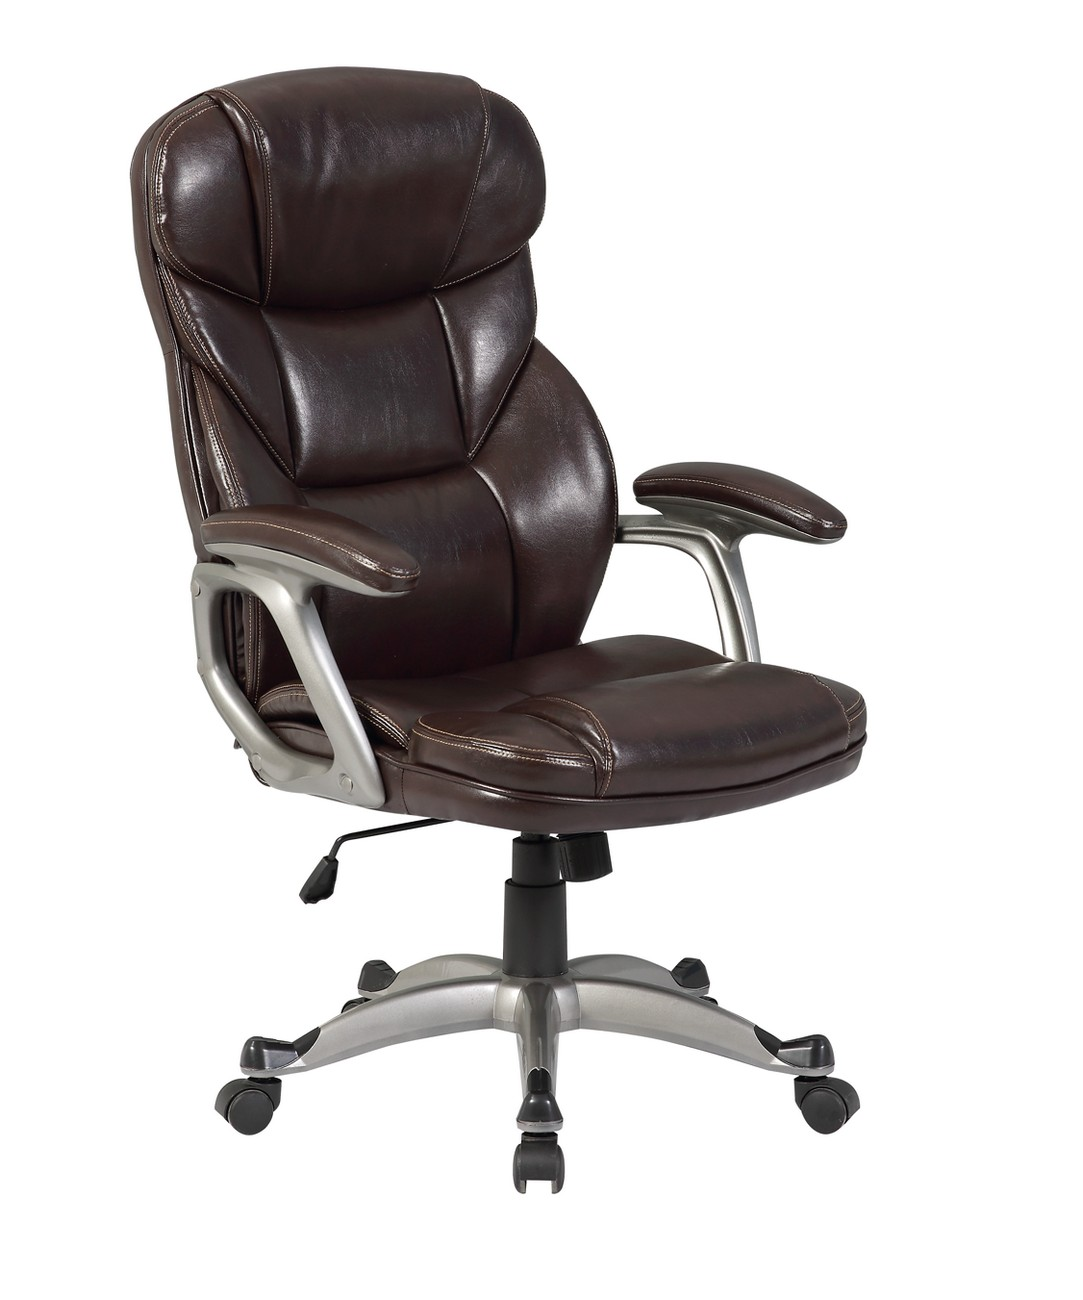 High Back Desk Chair Executive Office Chair Pu Leather Ergonomic High Back Desk